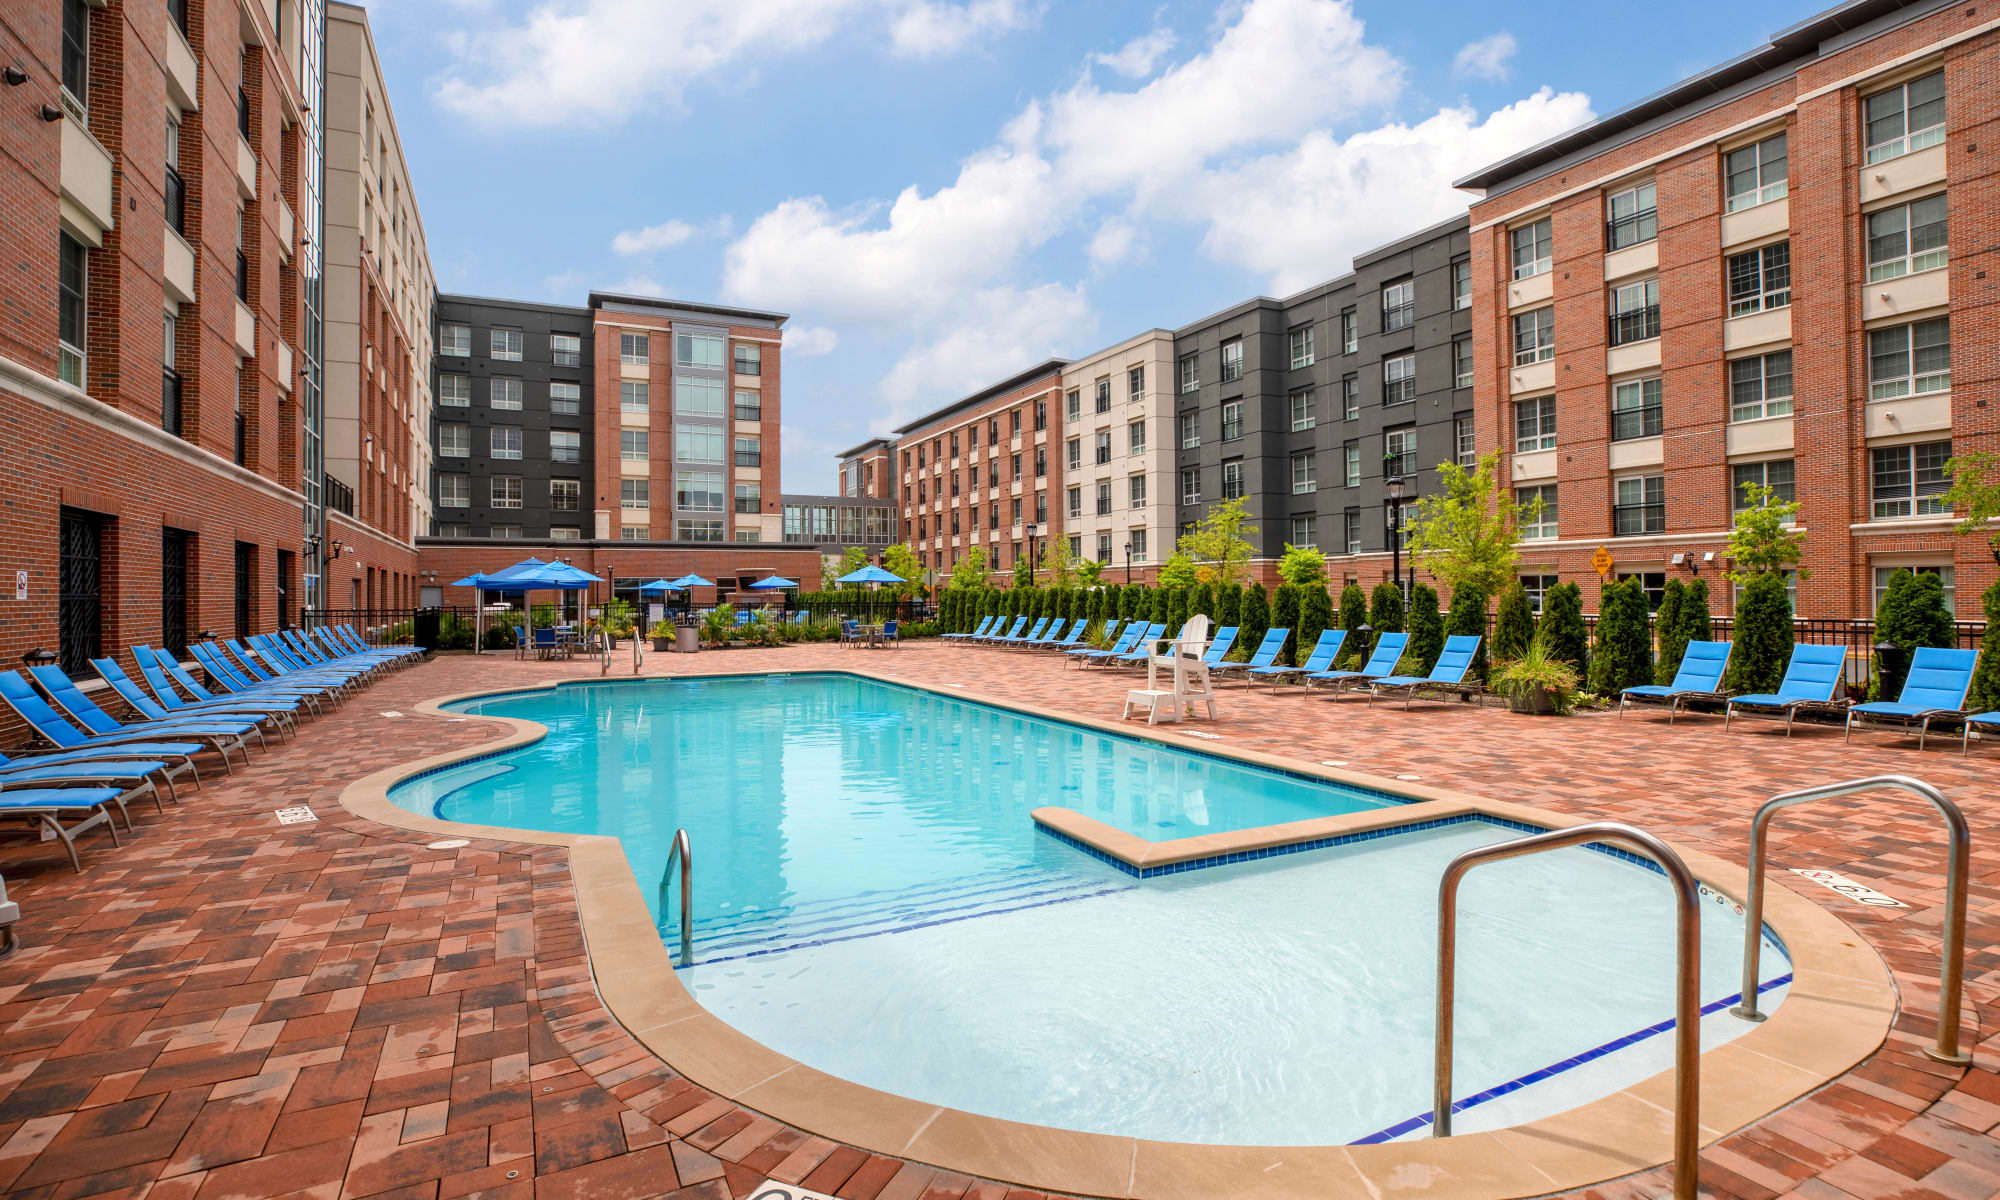 Swimming Pool at Apartments in Secaucus, New Jersey